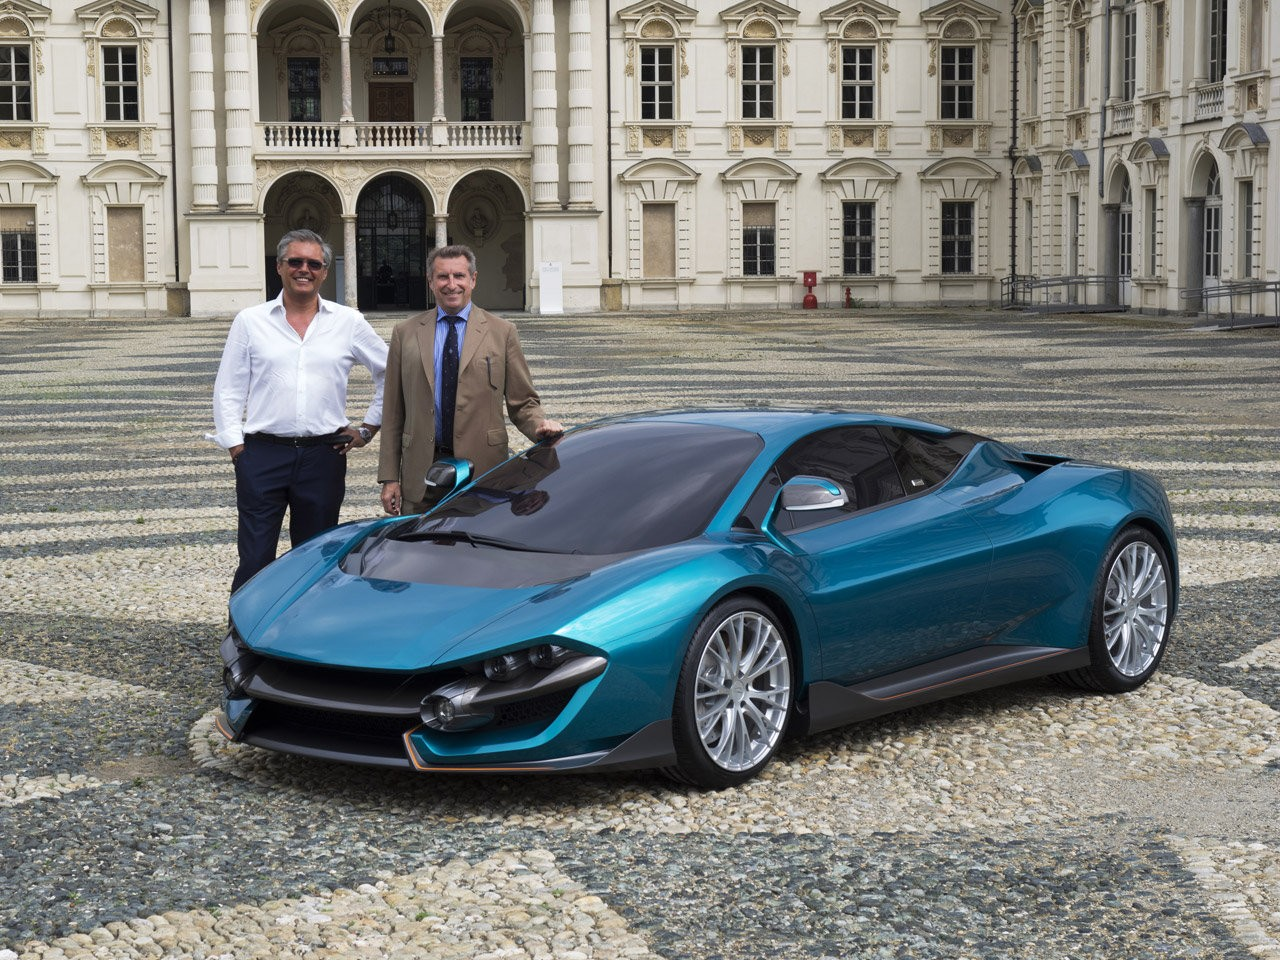 Torino Design ATS Wildtwelve! HYBRID HYPERCAR With A Top Speed Of 242 MPH 1